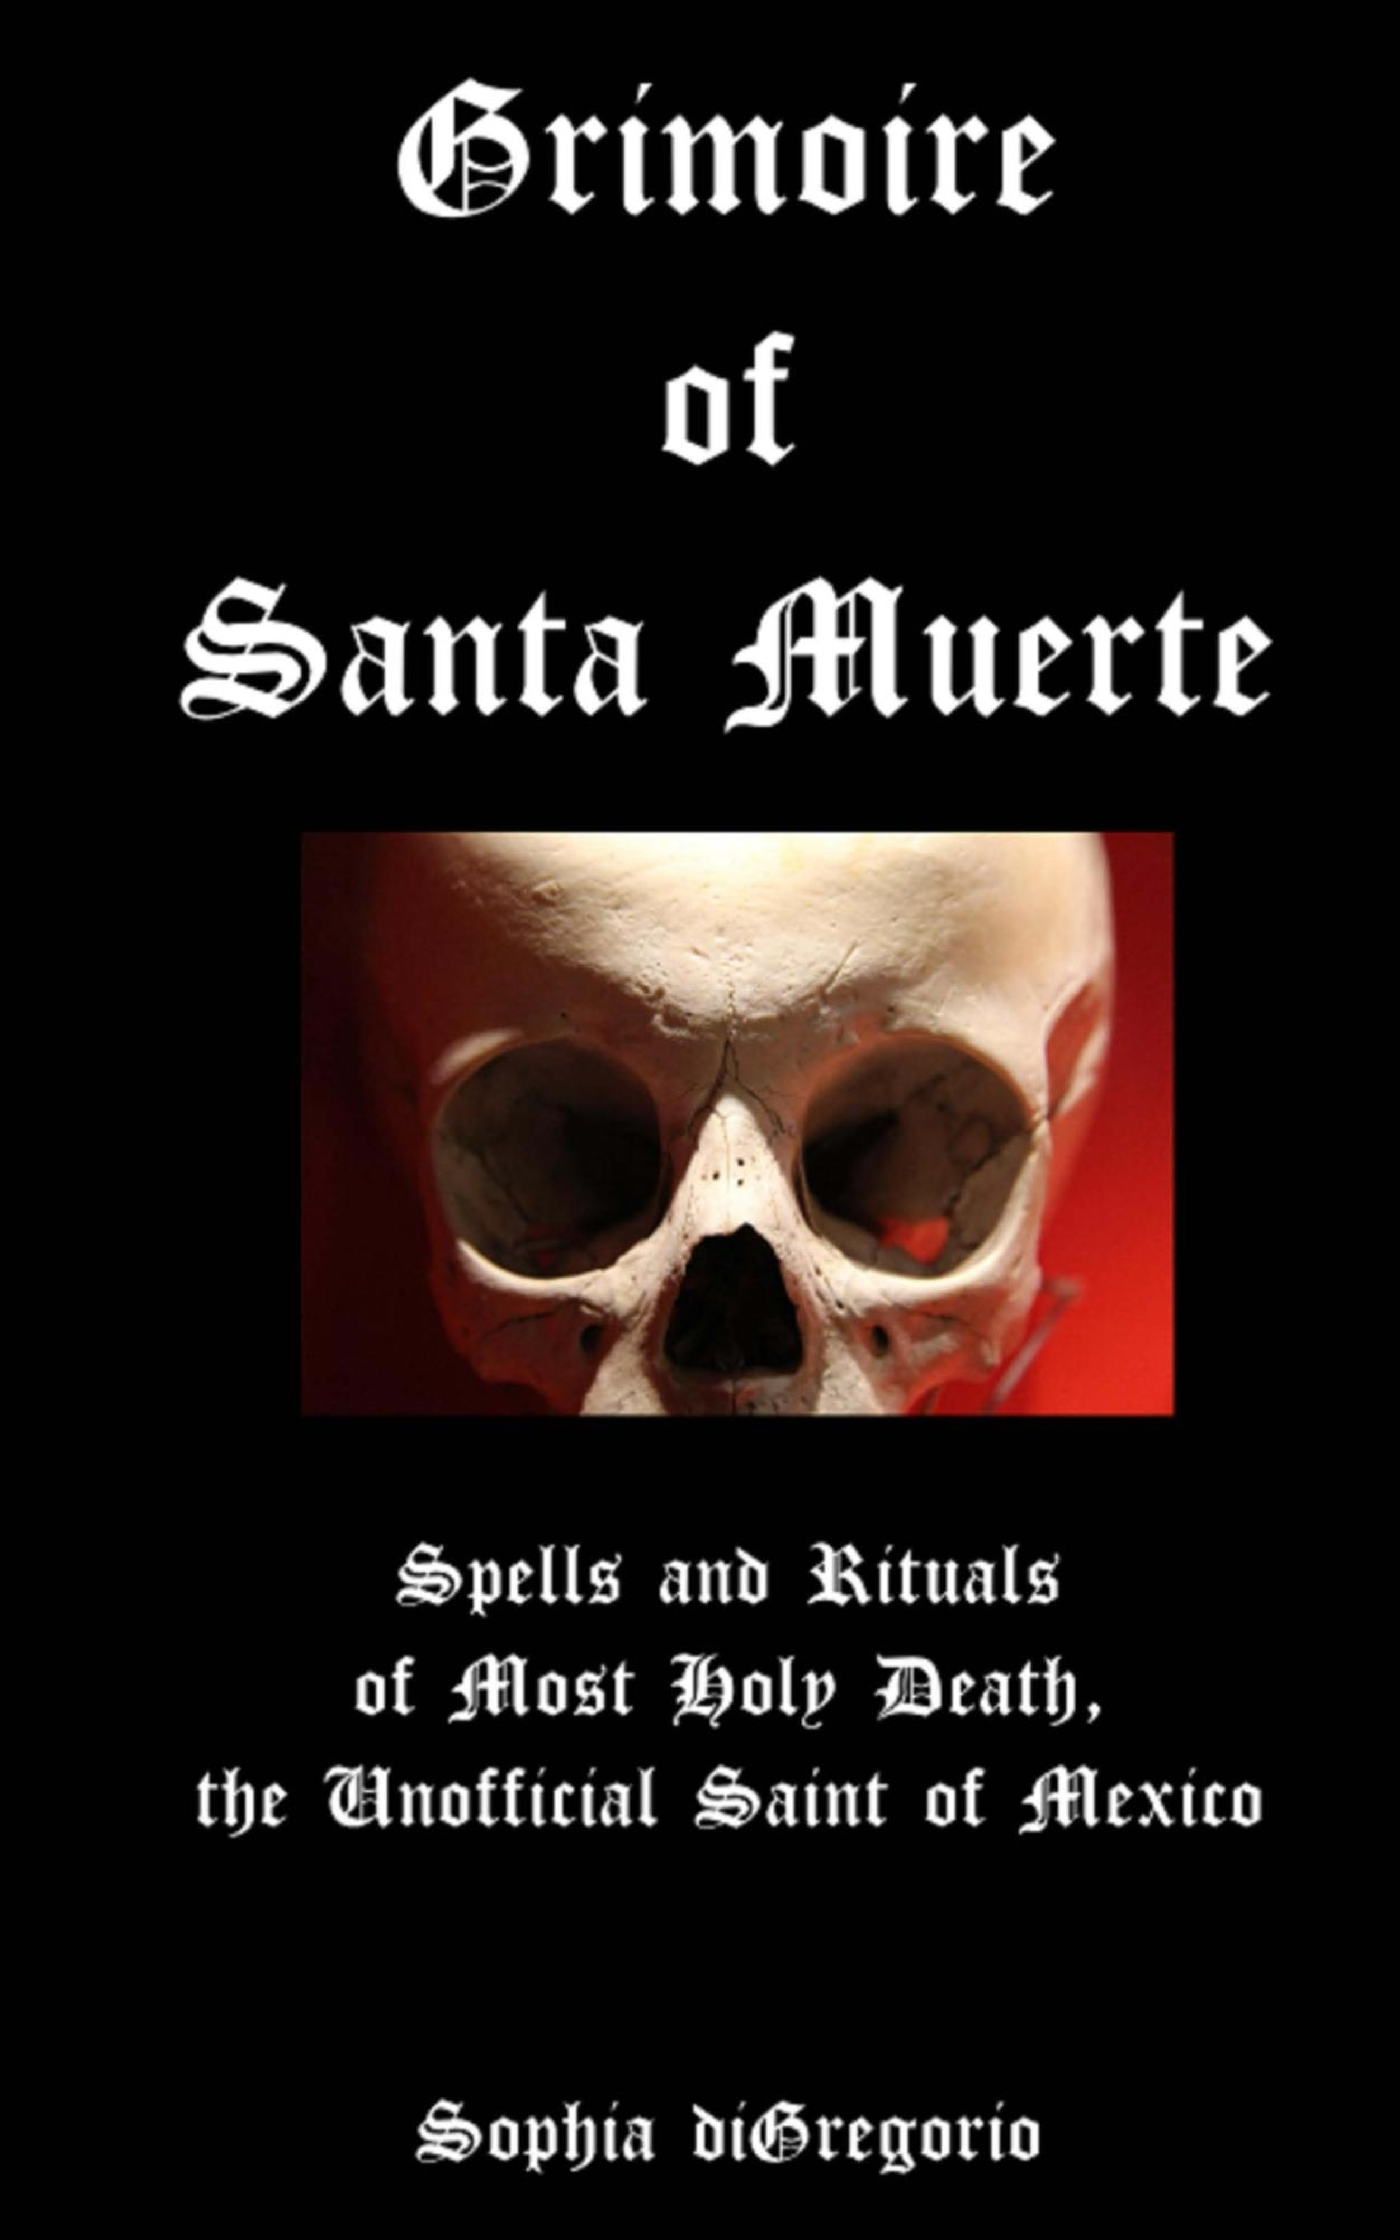 Grimoire of Santa Muerte: Spells and Rituals of Most Holy Death, the White Lady of Mexico